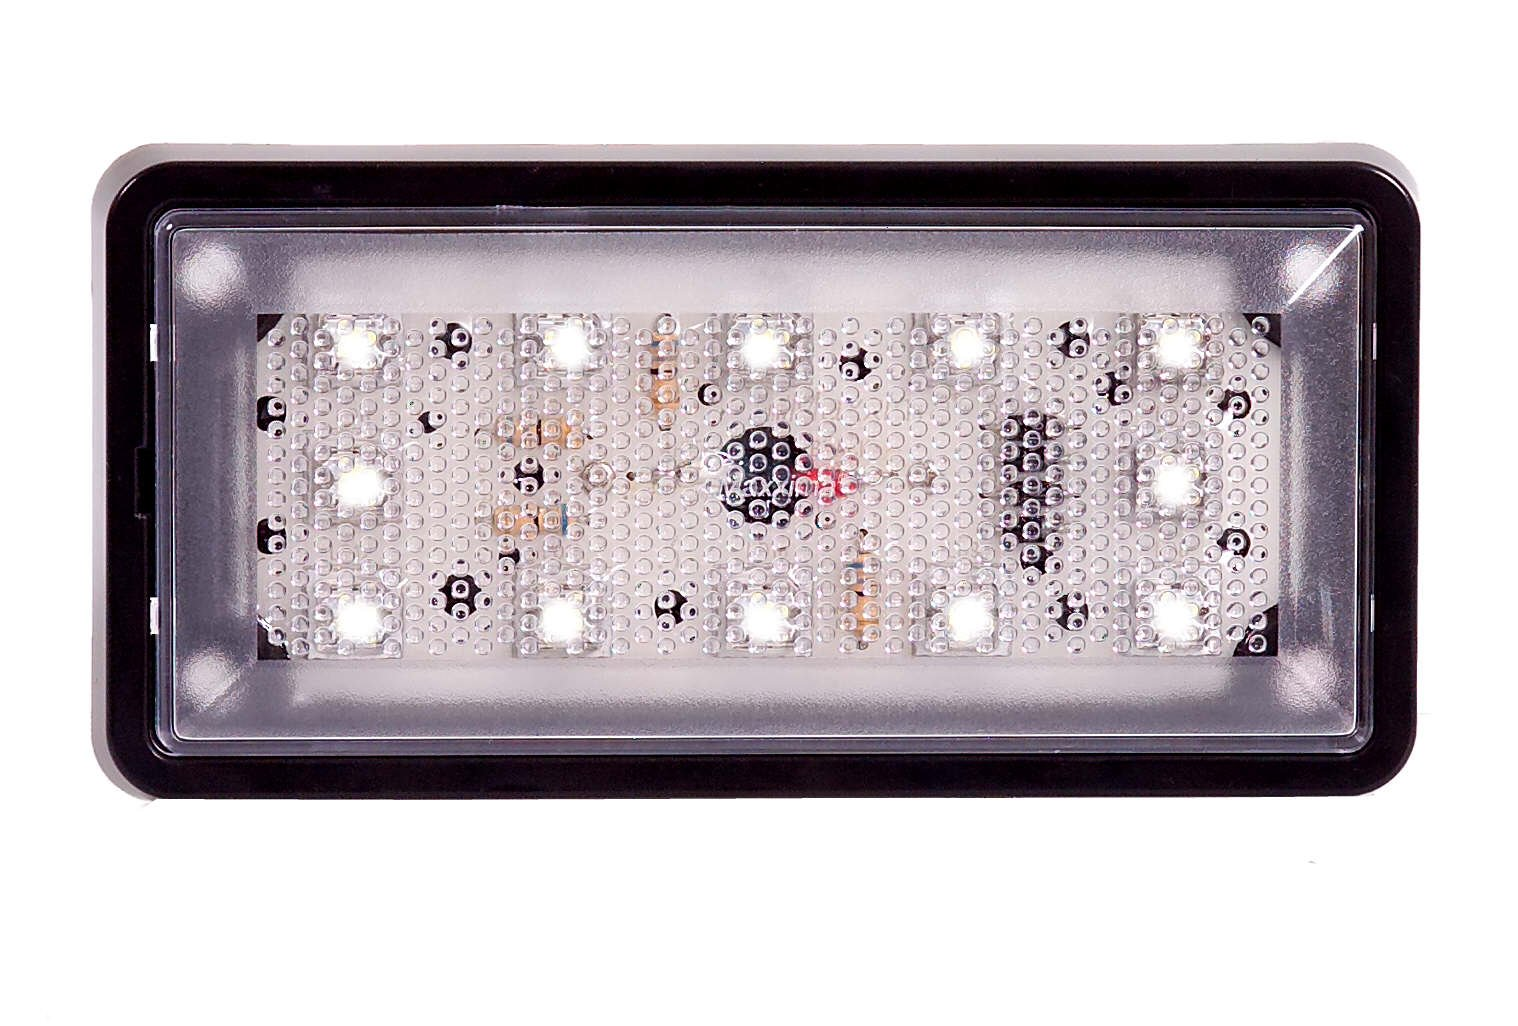 Maxxima (M84407-A) 3'' x 6'' LED Interior Compartment Light by Maxxima